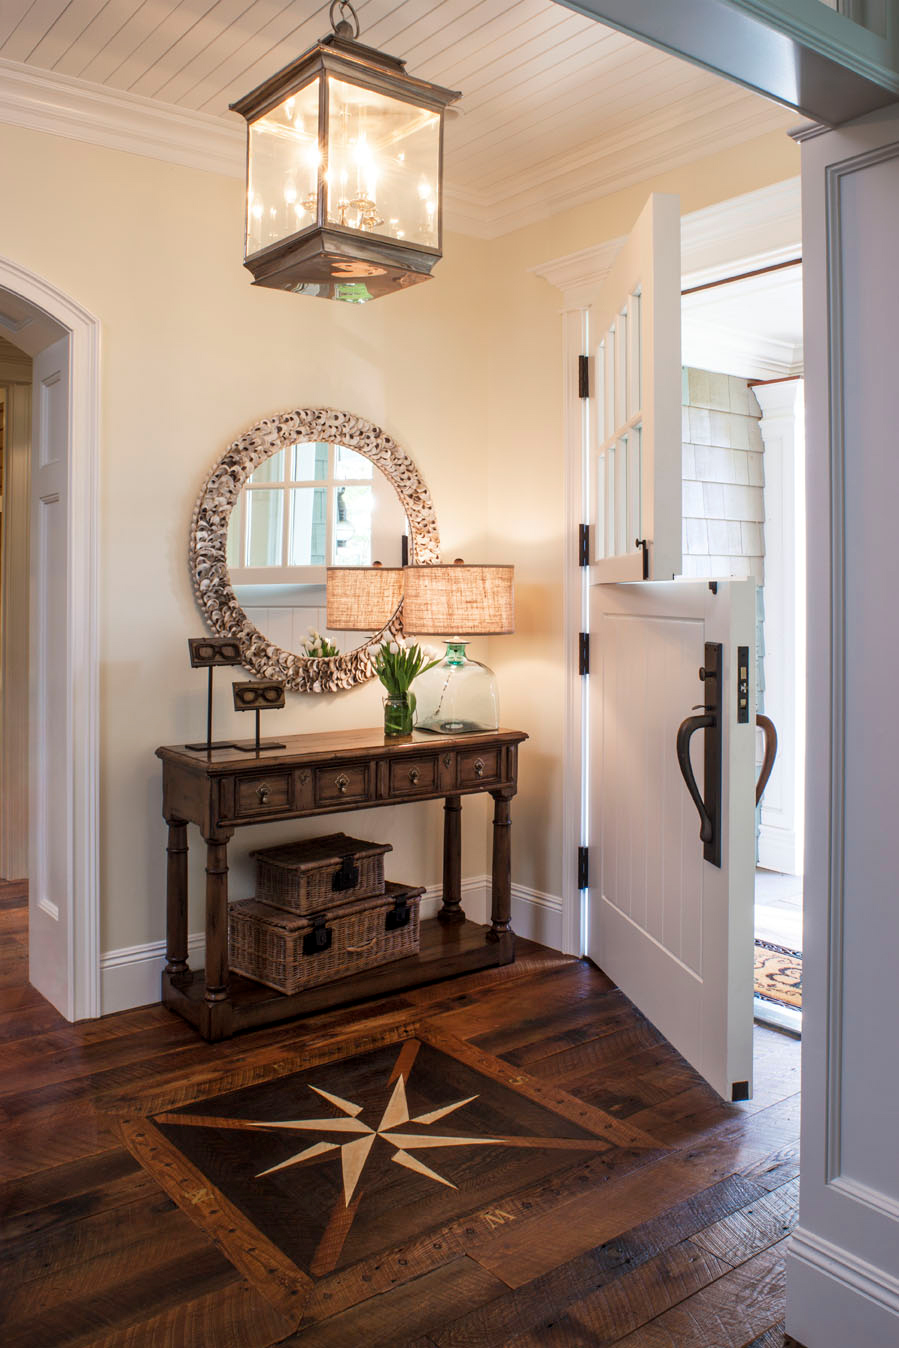 Entrance Foyer Plans : Best rustic entryway decorating ideas and designs for